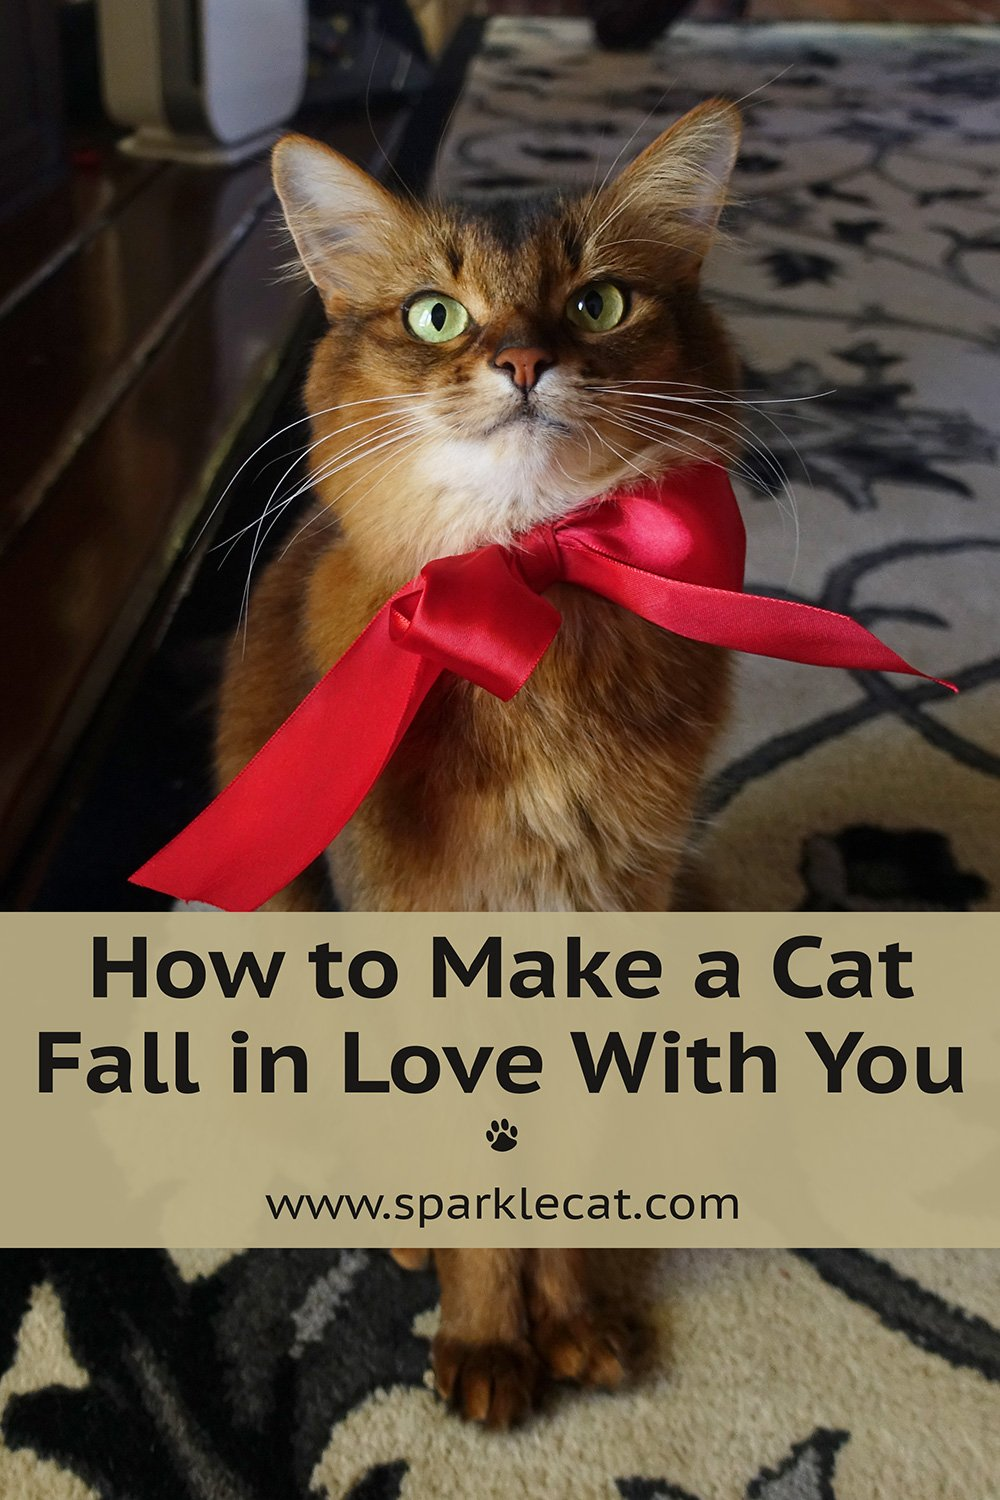 How to Make a Cat Fall in Love With You